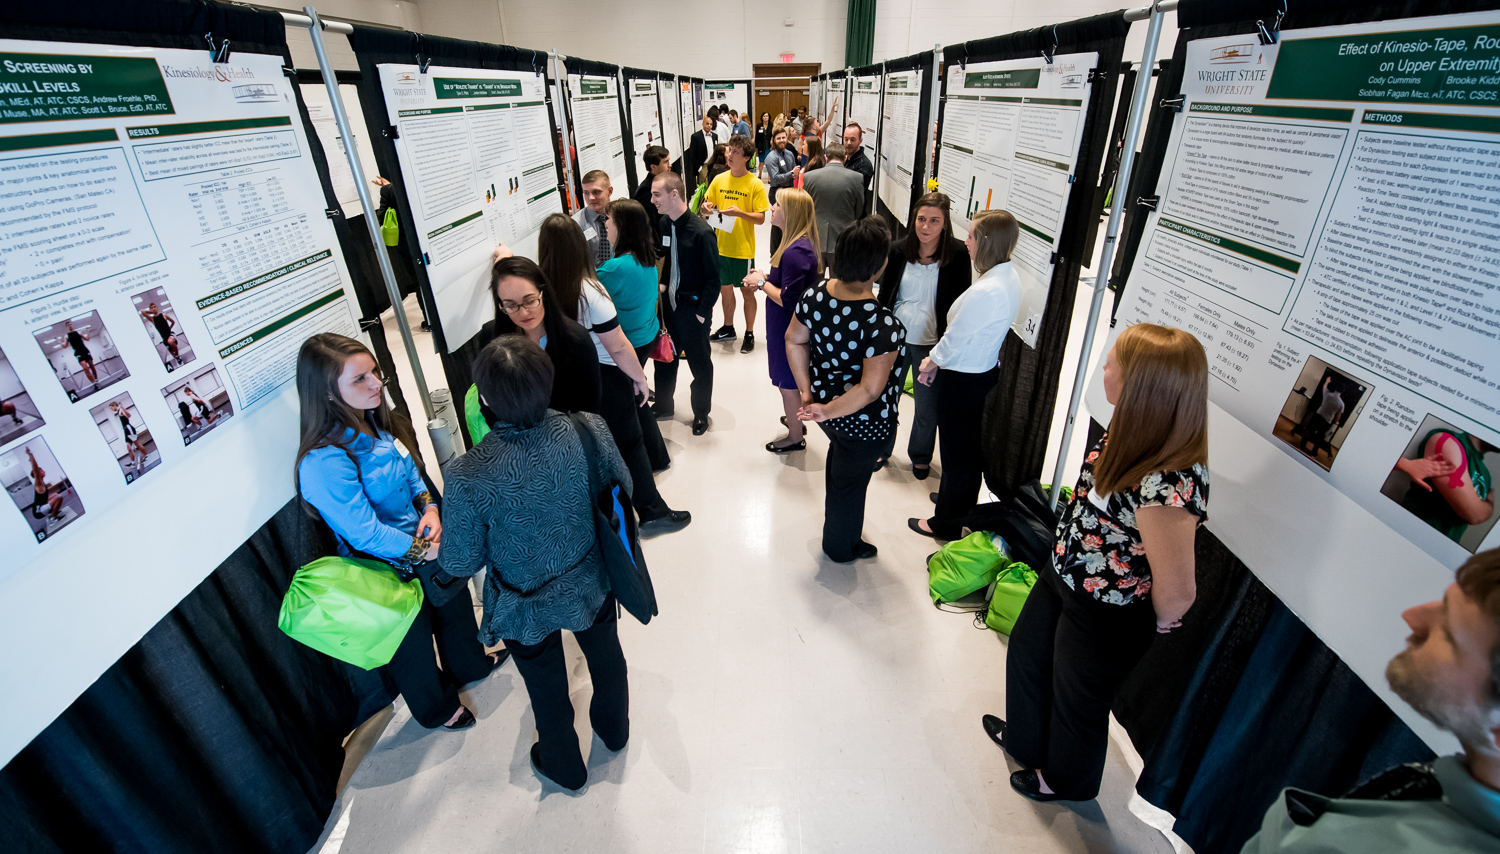 The 2016 Wright State University Celebration of Research, Scholarship and Creative Activities served as a university-wide showcase of research projects by undergraduate and graduate students